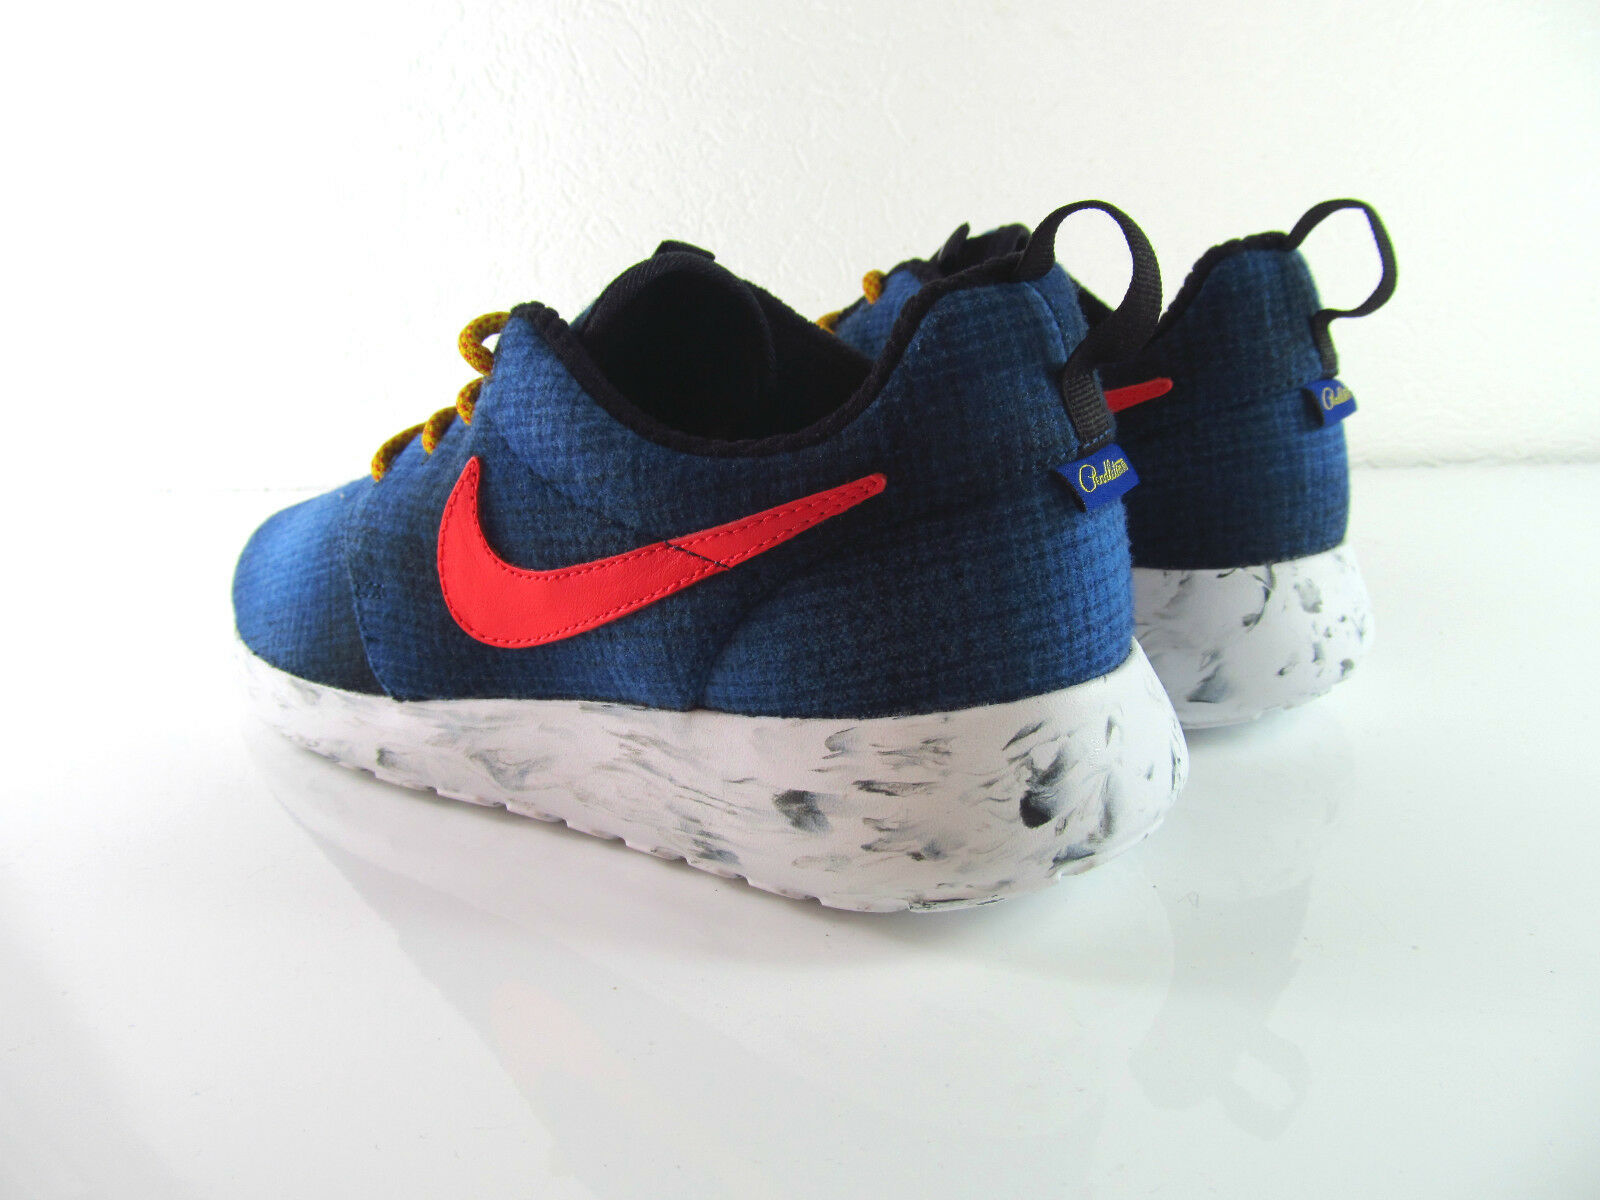 Nike Rosherun Roshe ID Premium Pendleton Very US_9.5 Rare Running UK_8.5  US_9.5 Very Eur 43 728c08